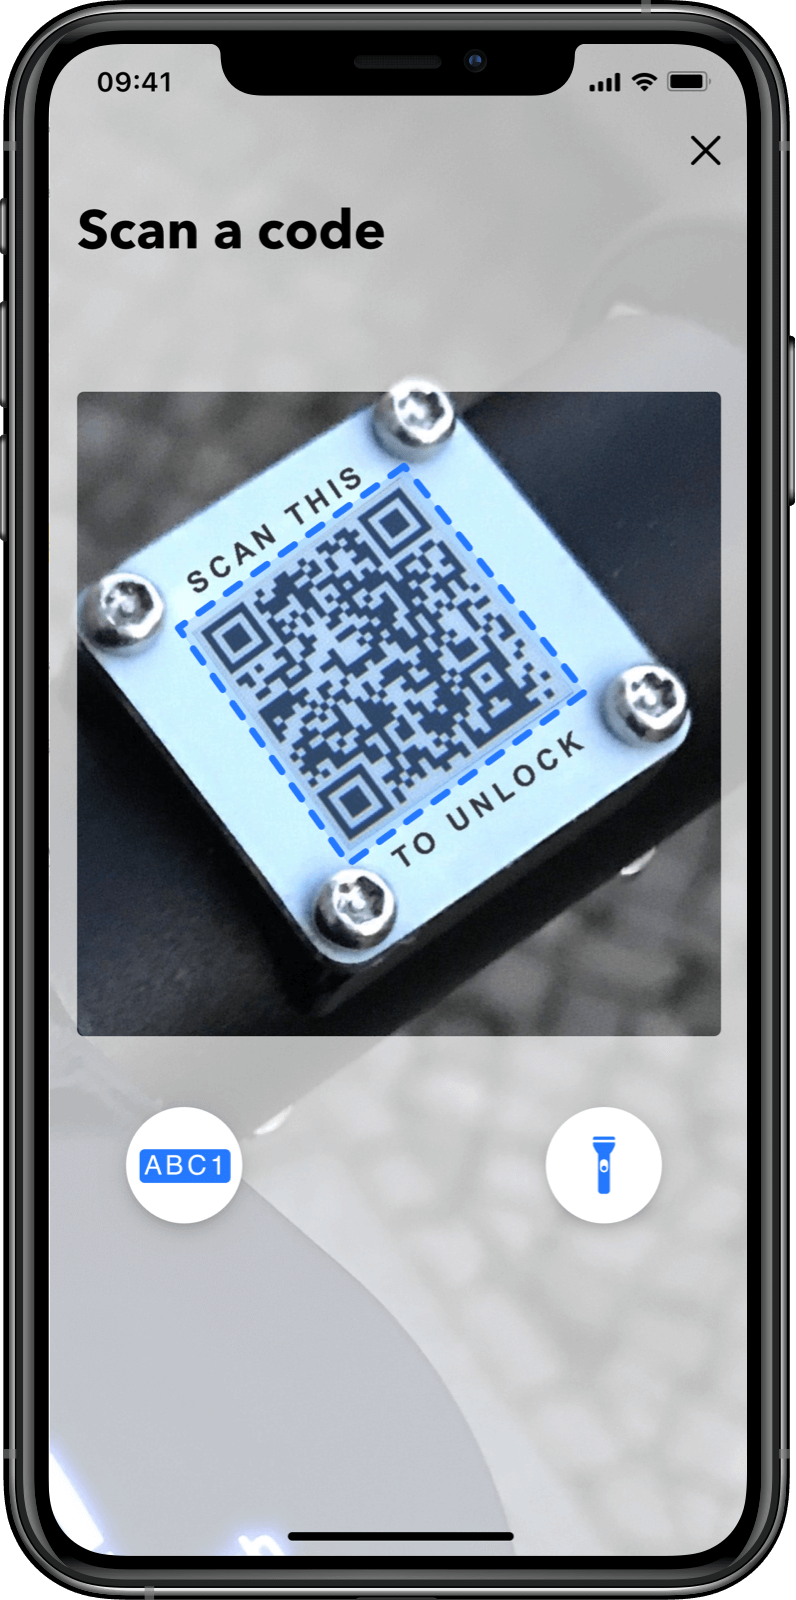 Customer App: scan qr code to unlock